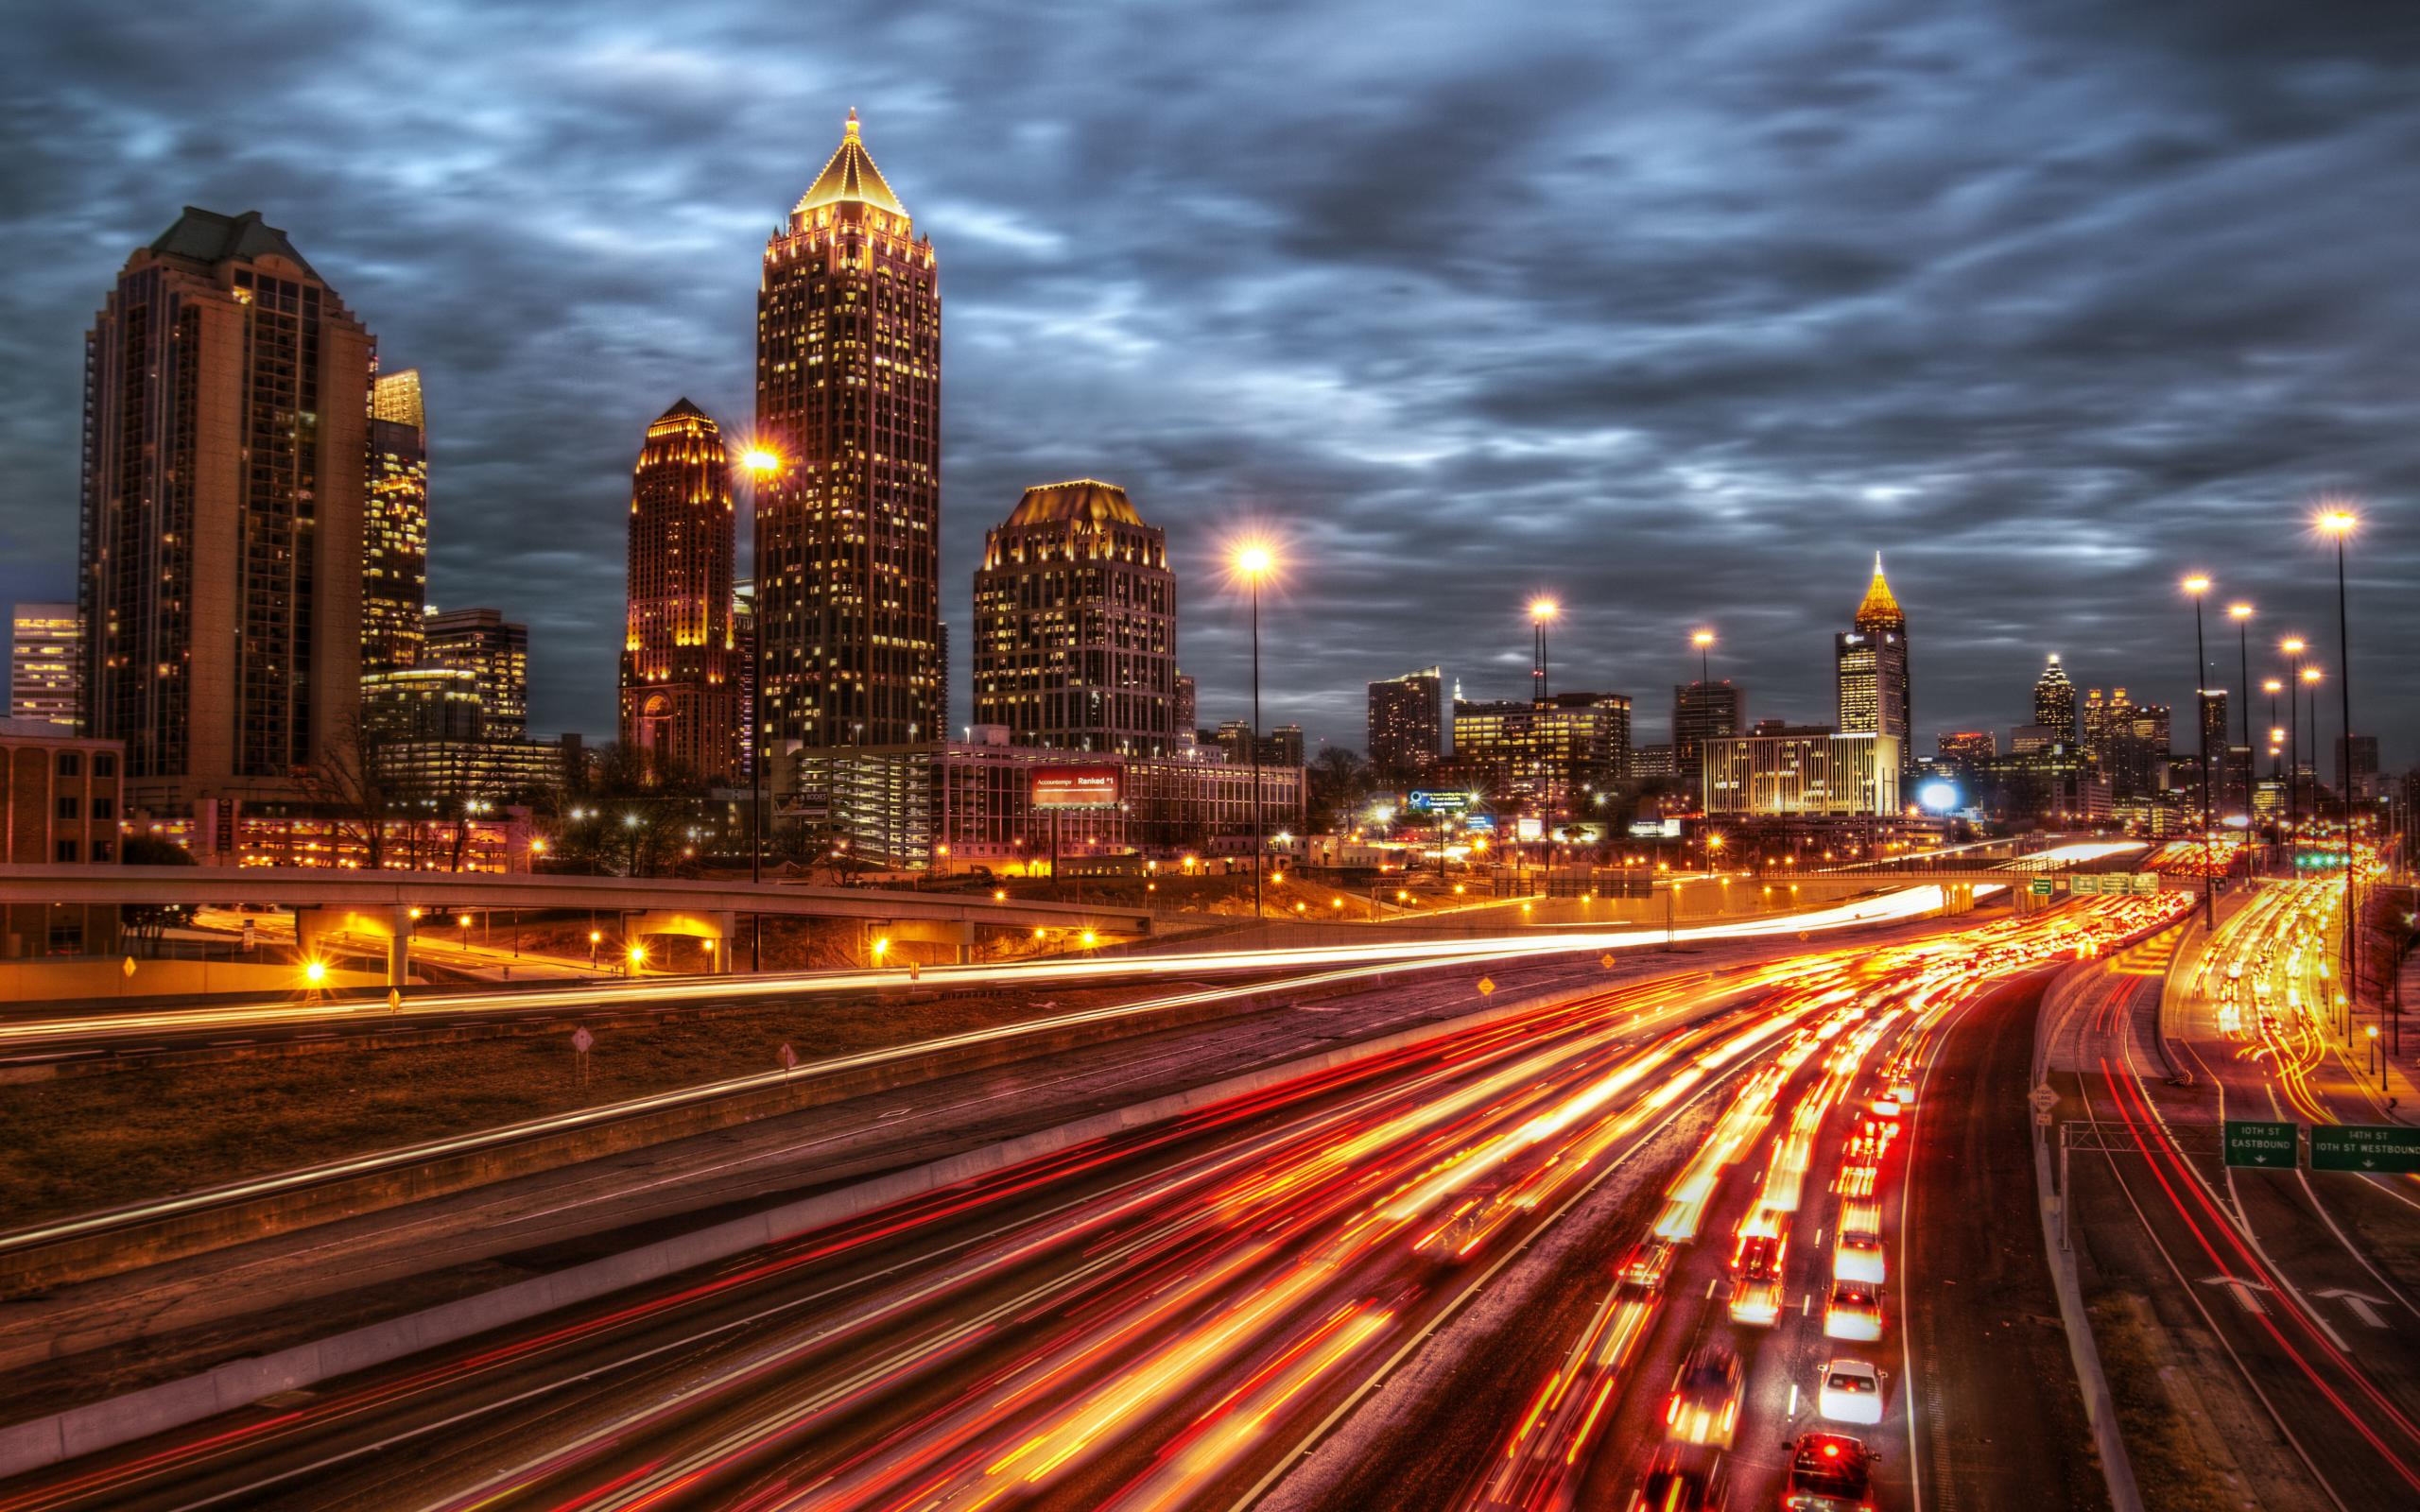 Atlanta City Night In High Resolution | Atlanta Georgia | Pinterest ...